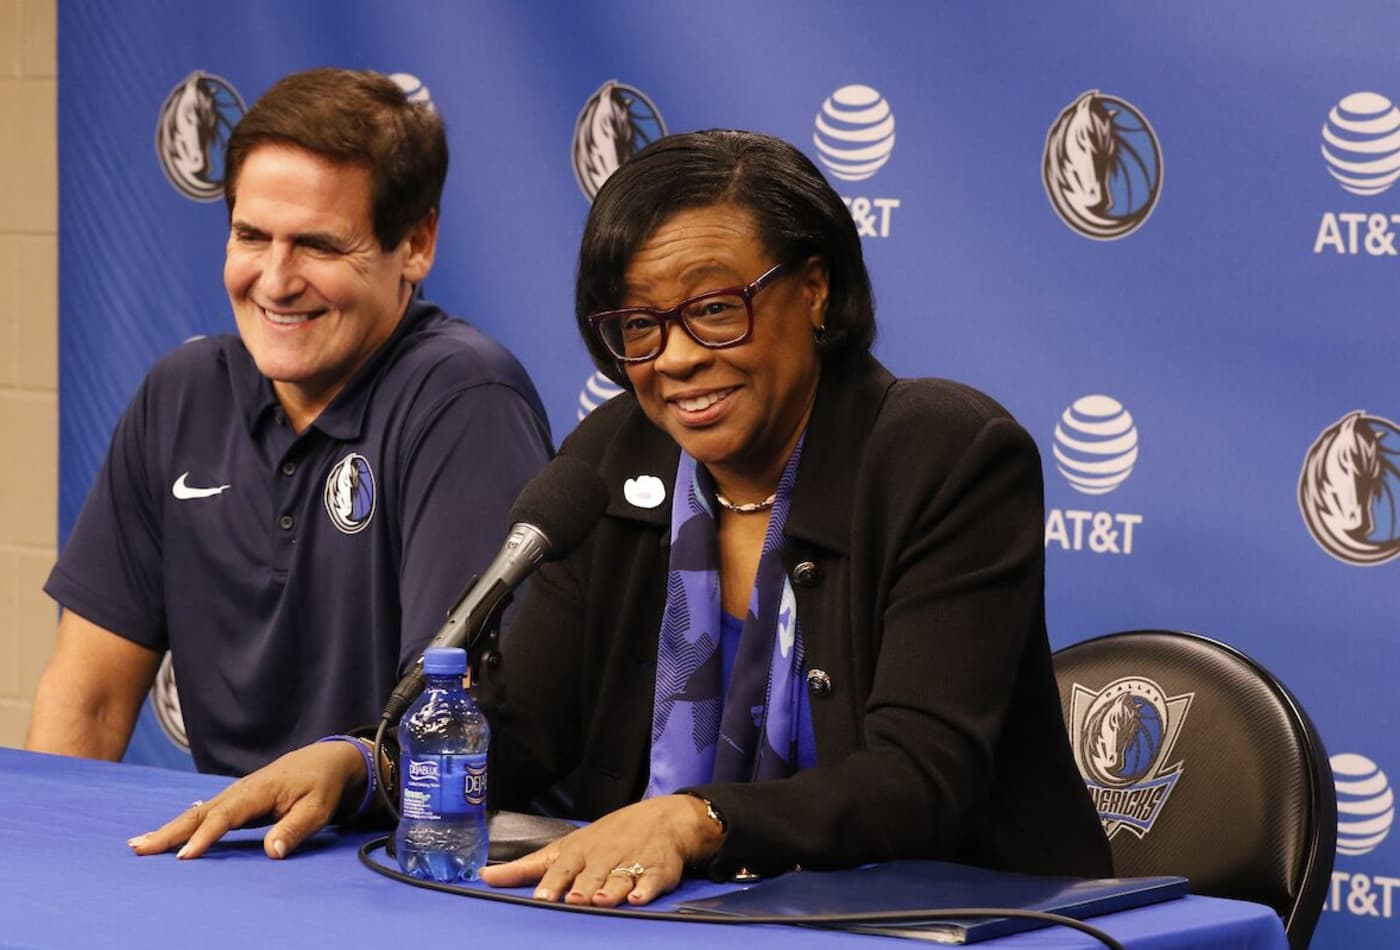 From the first black cheerleader at Berkeley to making history as Mavericks CEO: How Cynt Marshall did it